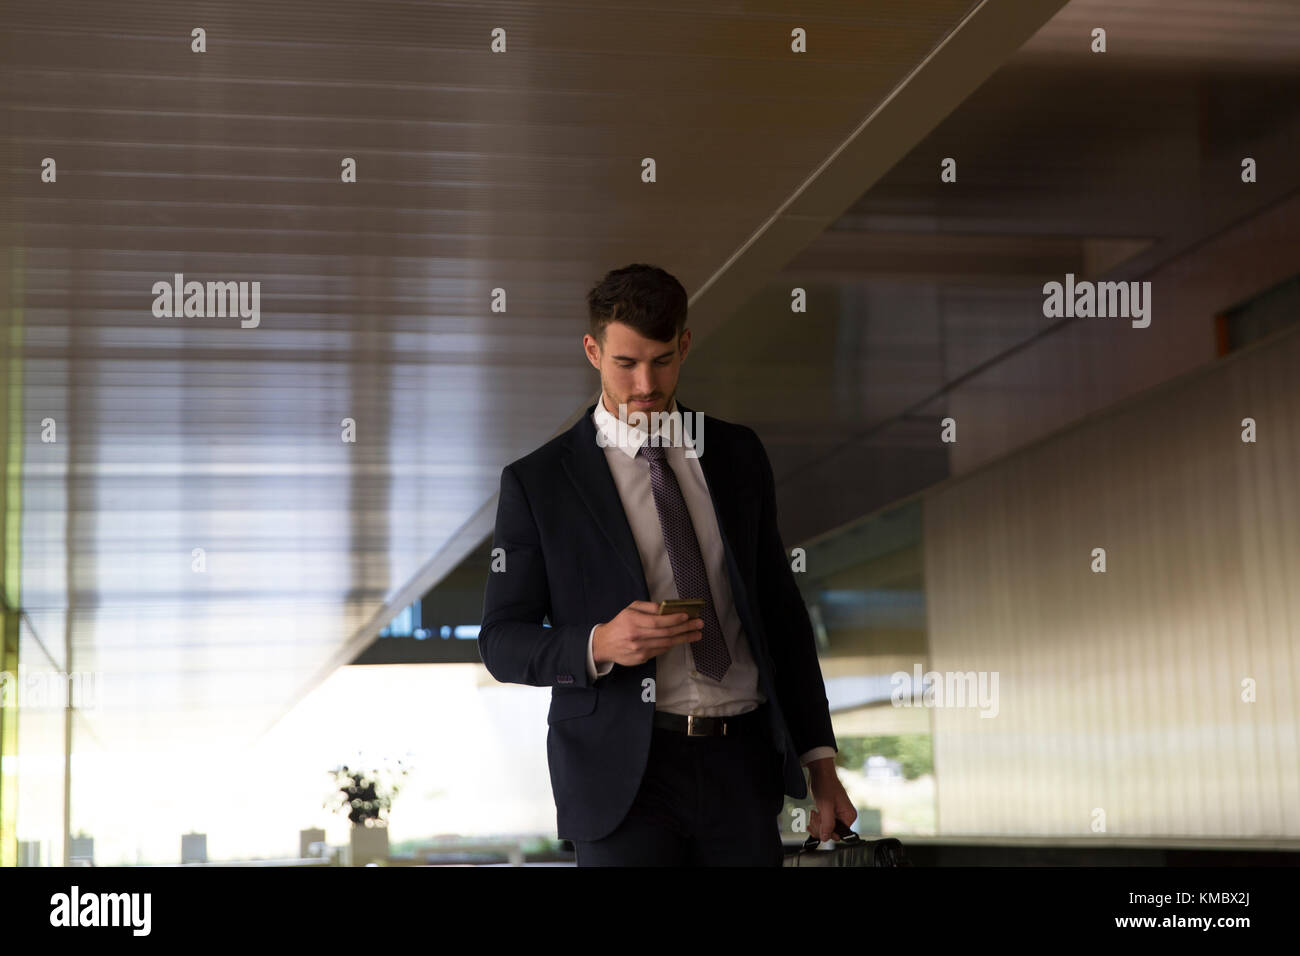 Businessman texting with smart phone in office lobby - Stock Image